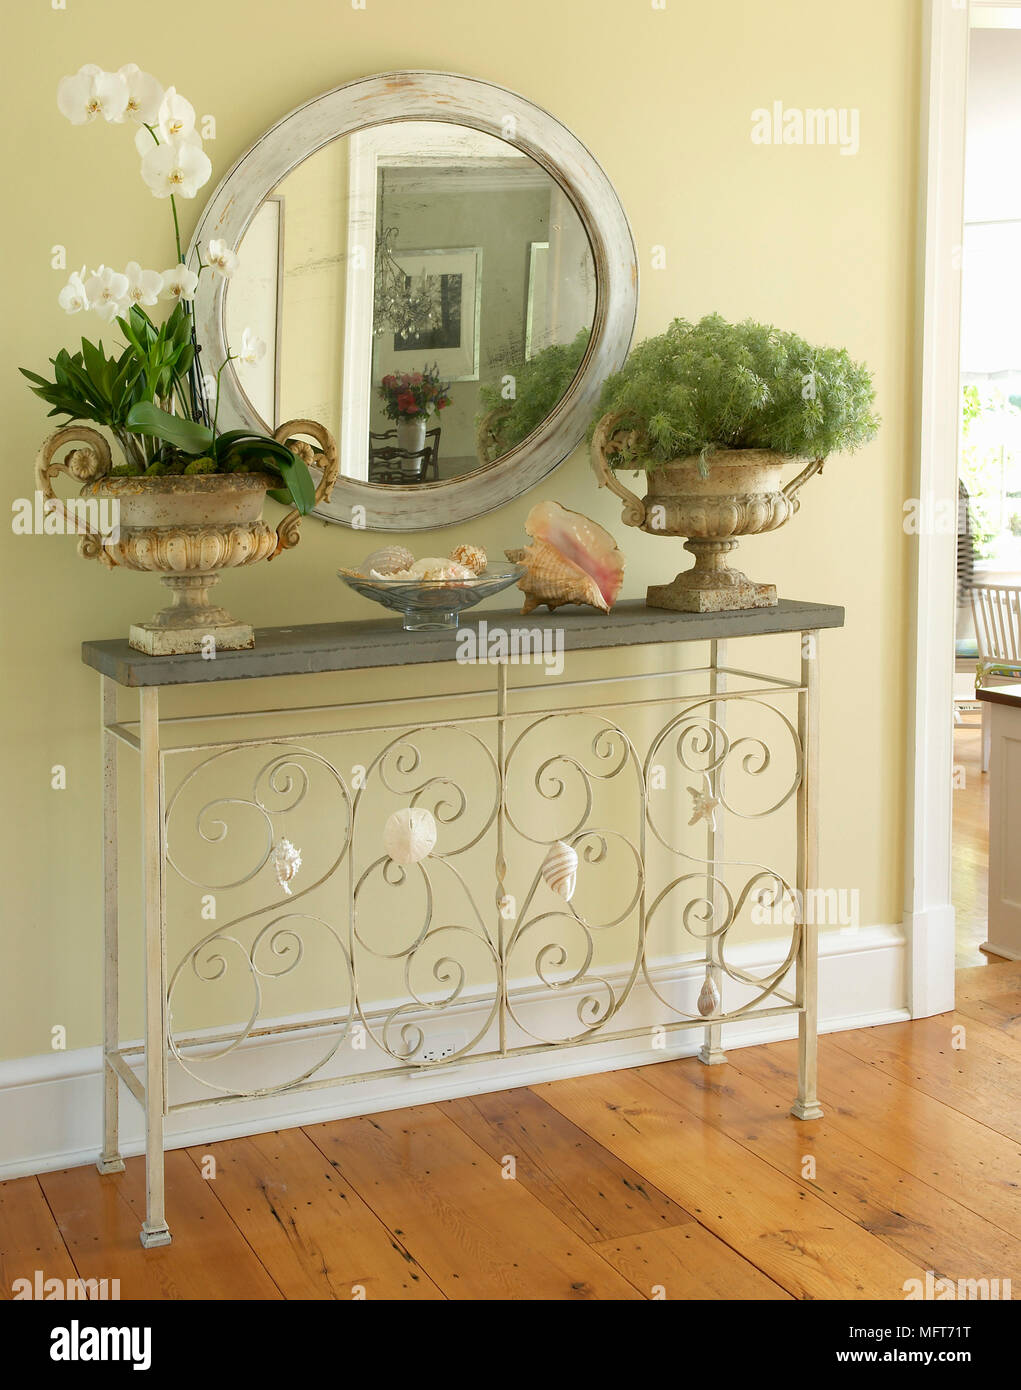 Pair Of Stone Urns Either Side Of Mirror On Metal Hall Table